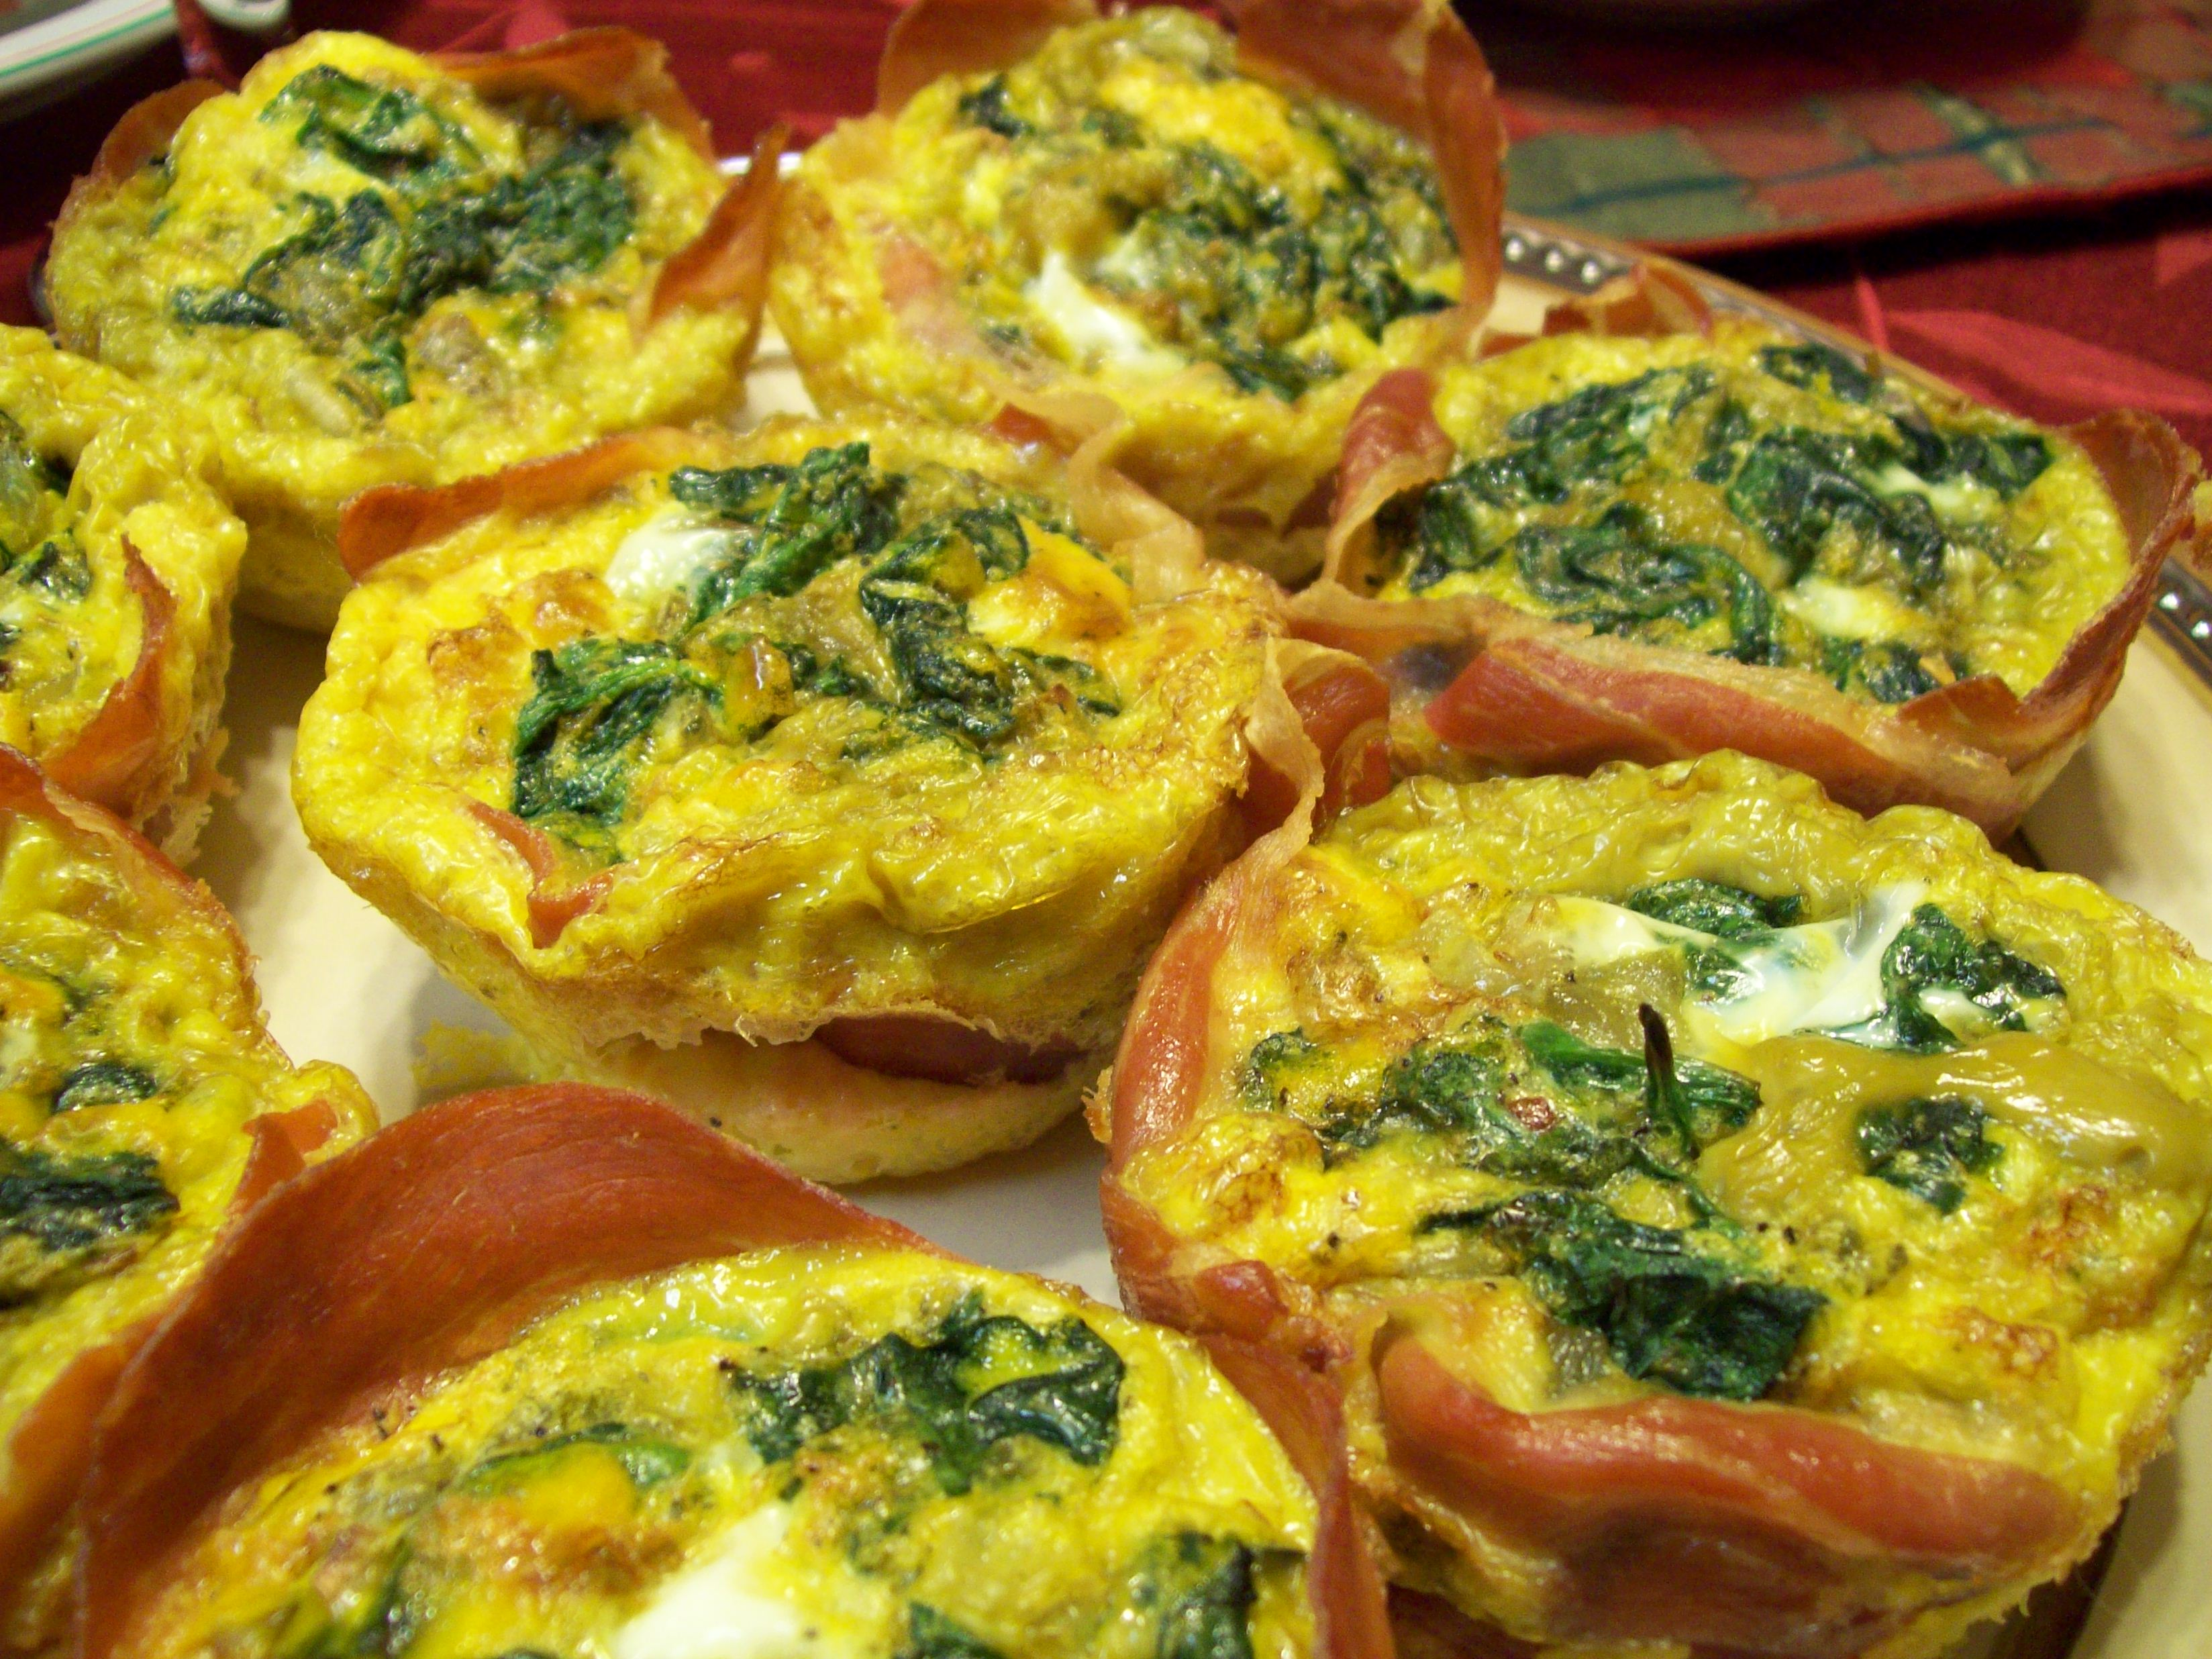 Prosciutto and Spinach Egg Cups